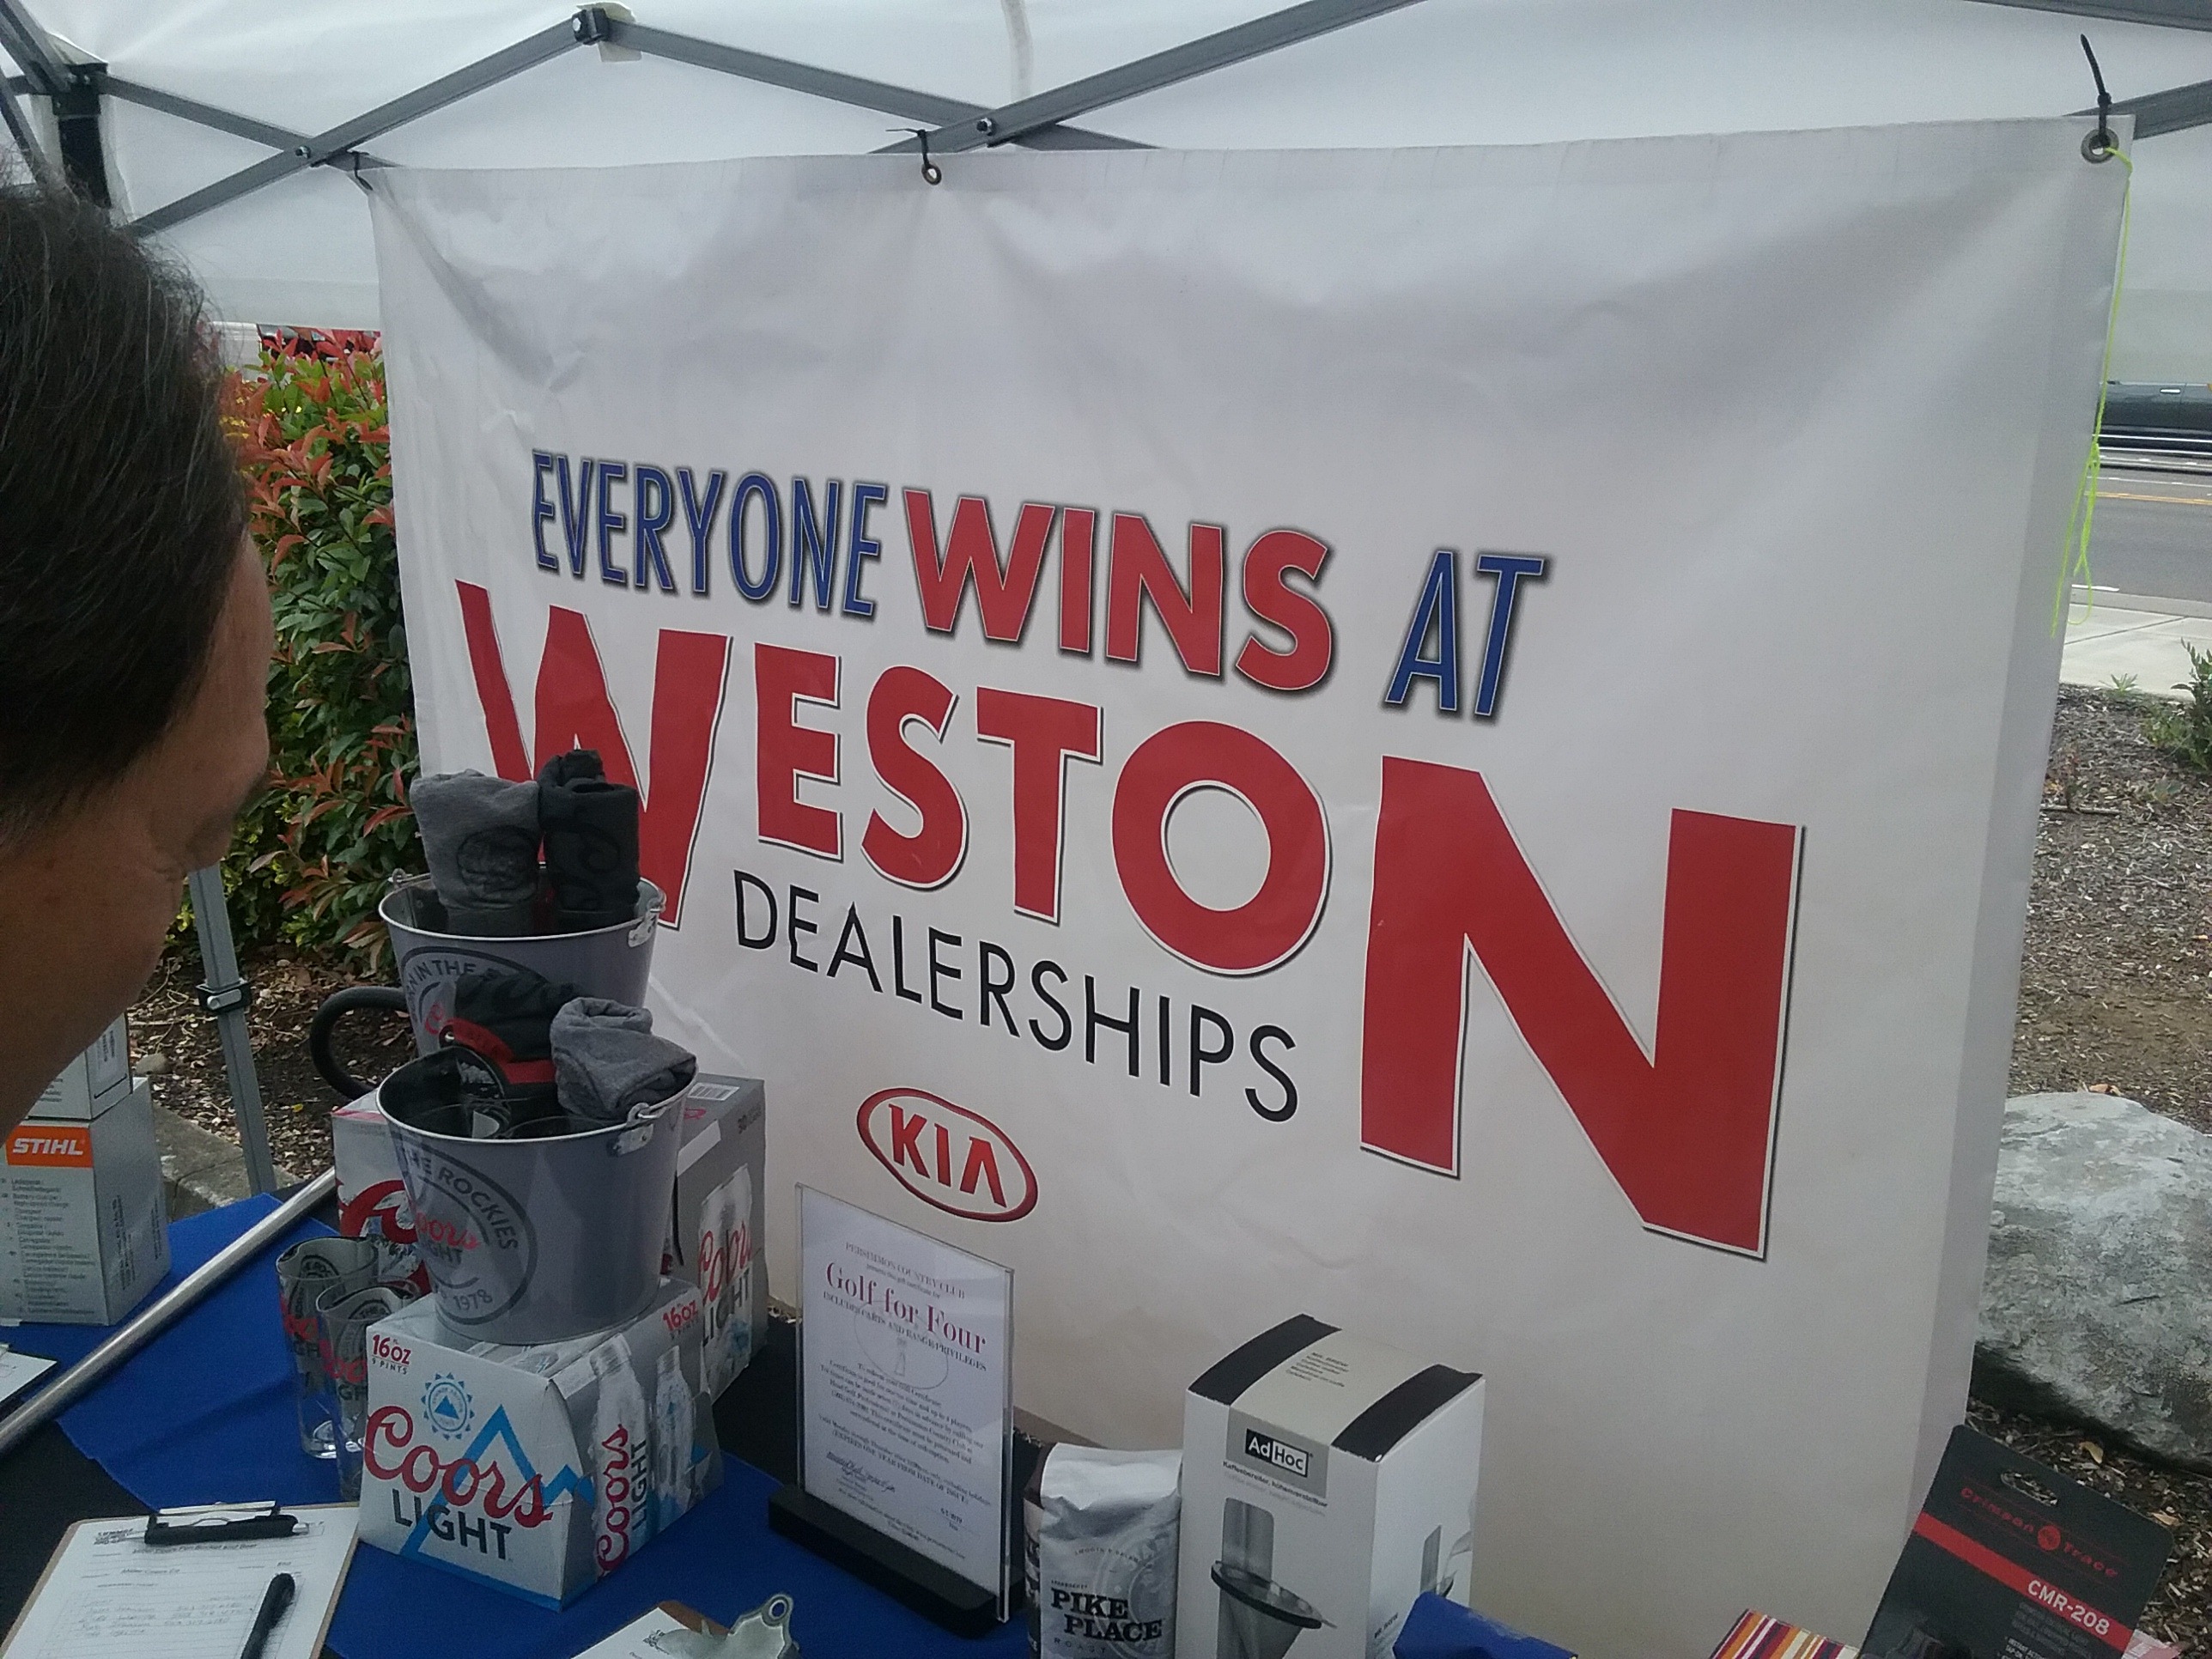 Everyone Wins At Weston